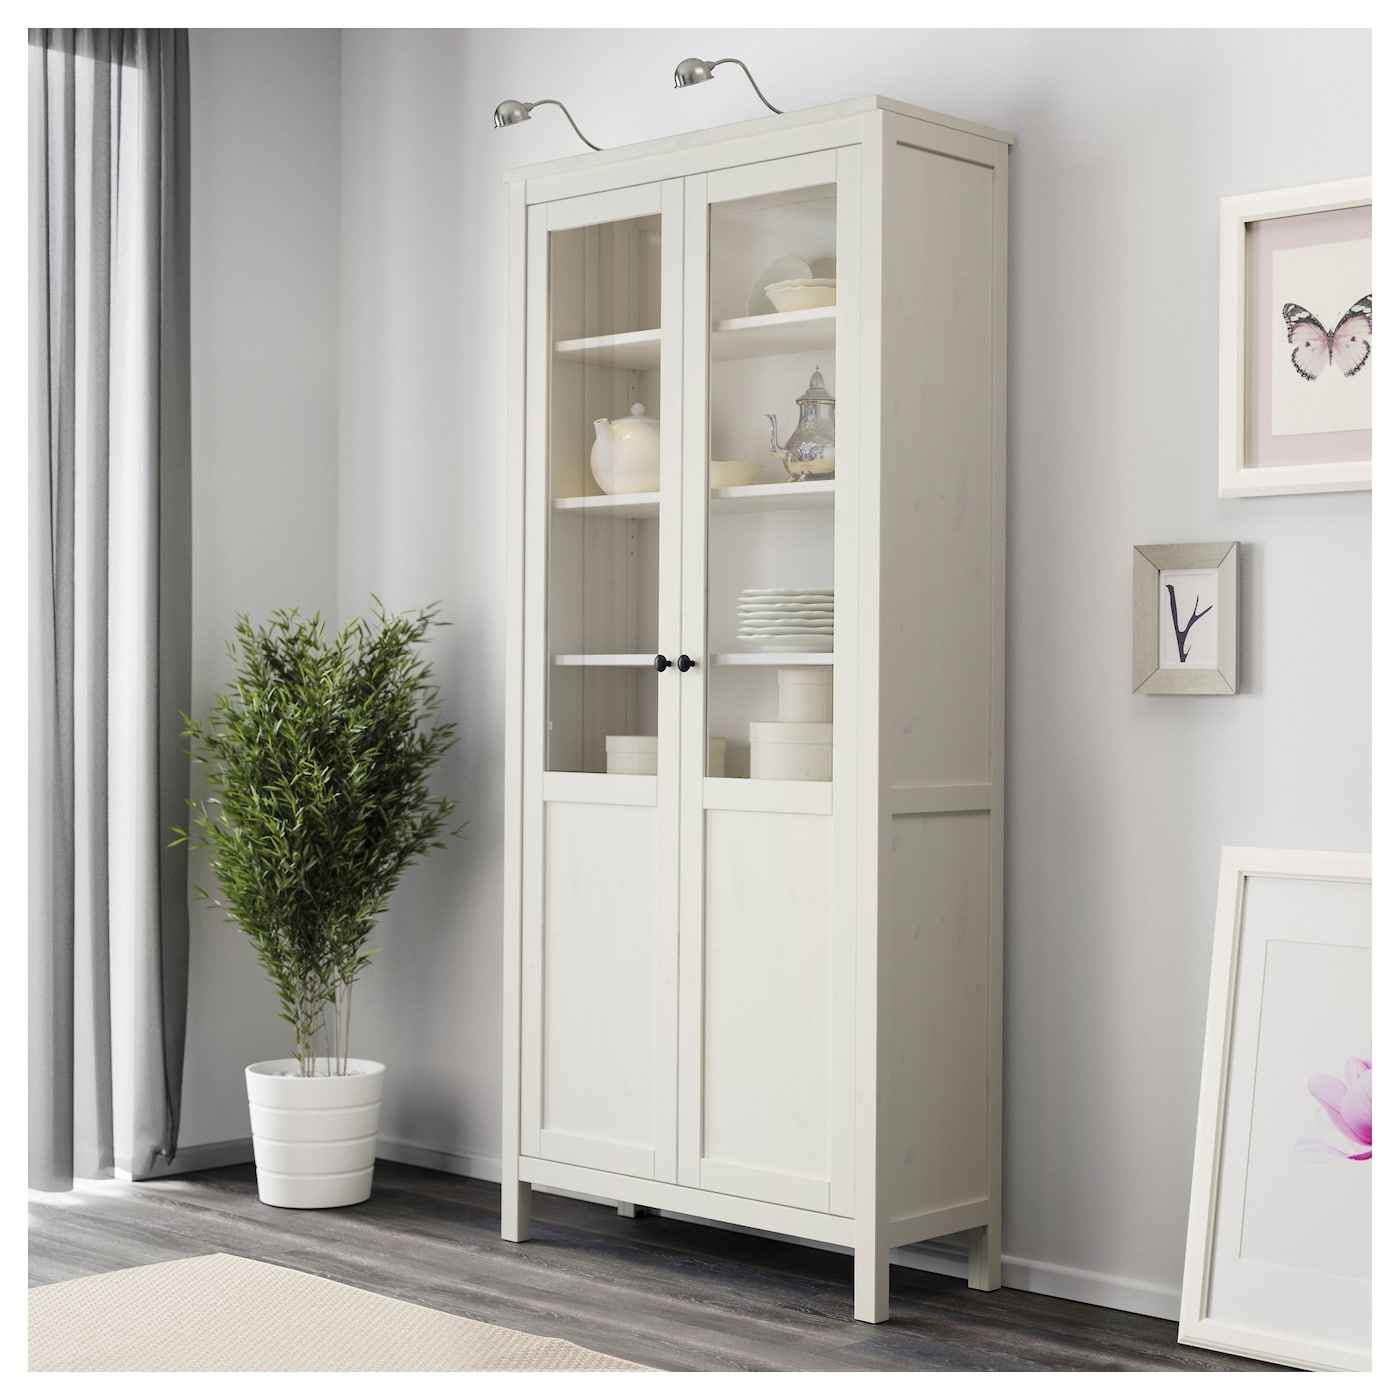 Hemnes cabinet with panel glass door white stain 90 x 197 - Ikea glass cabinets ...